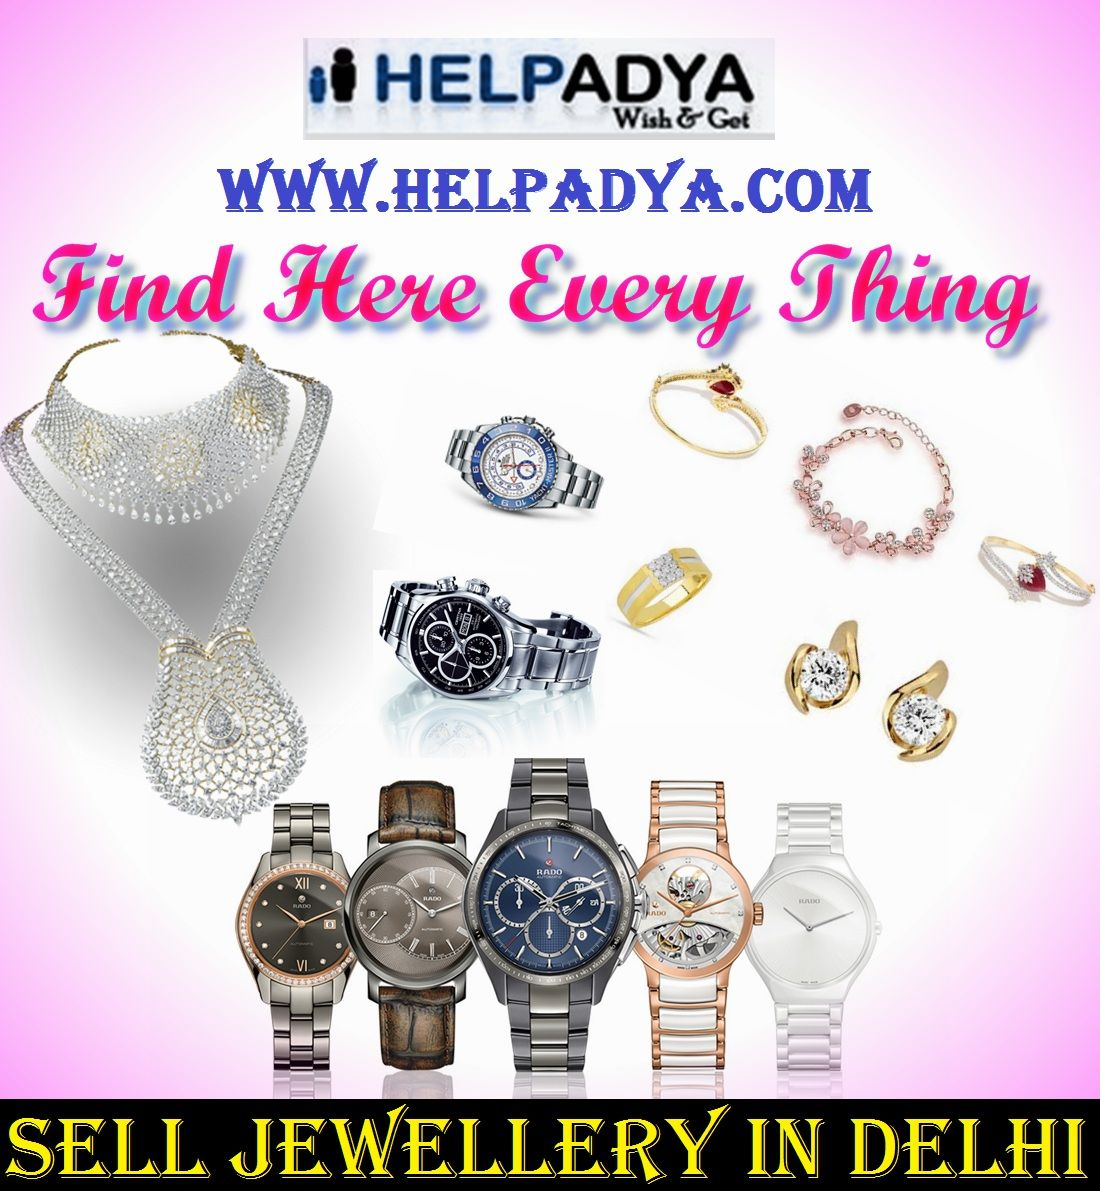 Sell Jewellery in Delhi on Help Adya Want to Sell ...